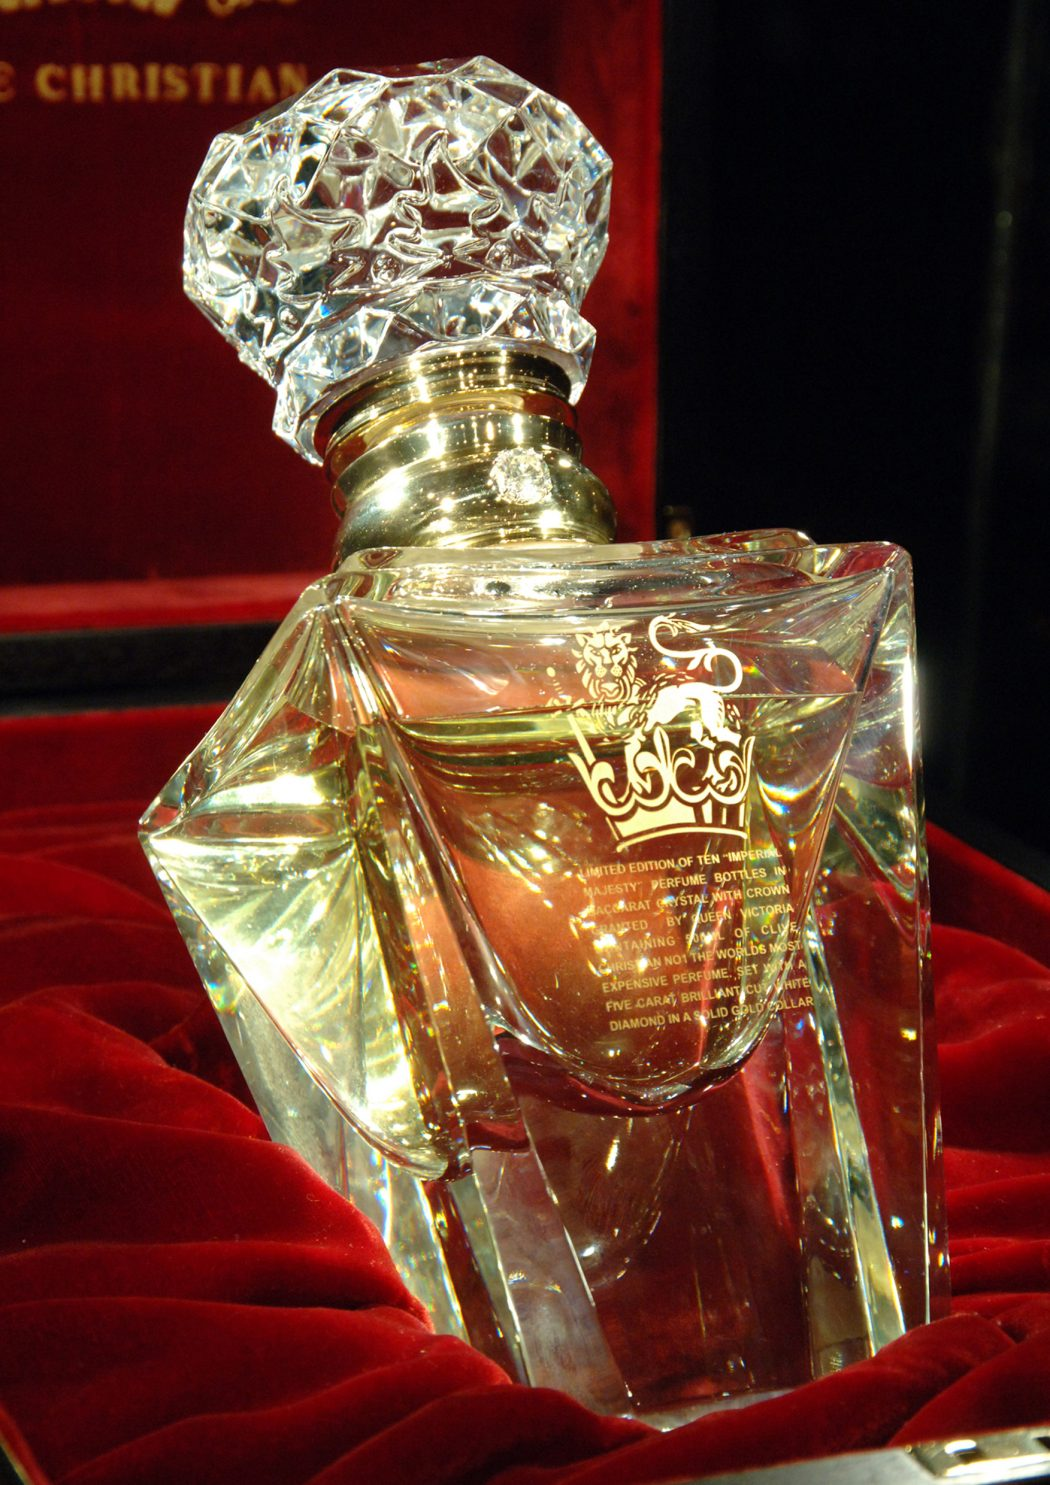 clive-christian-no-1-perfume-imperial-majesty-edition-closeup 10 Most Expensive Perfumes for Men in The World